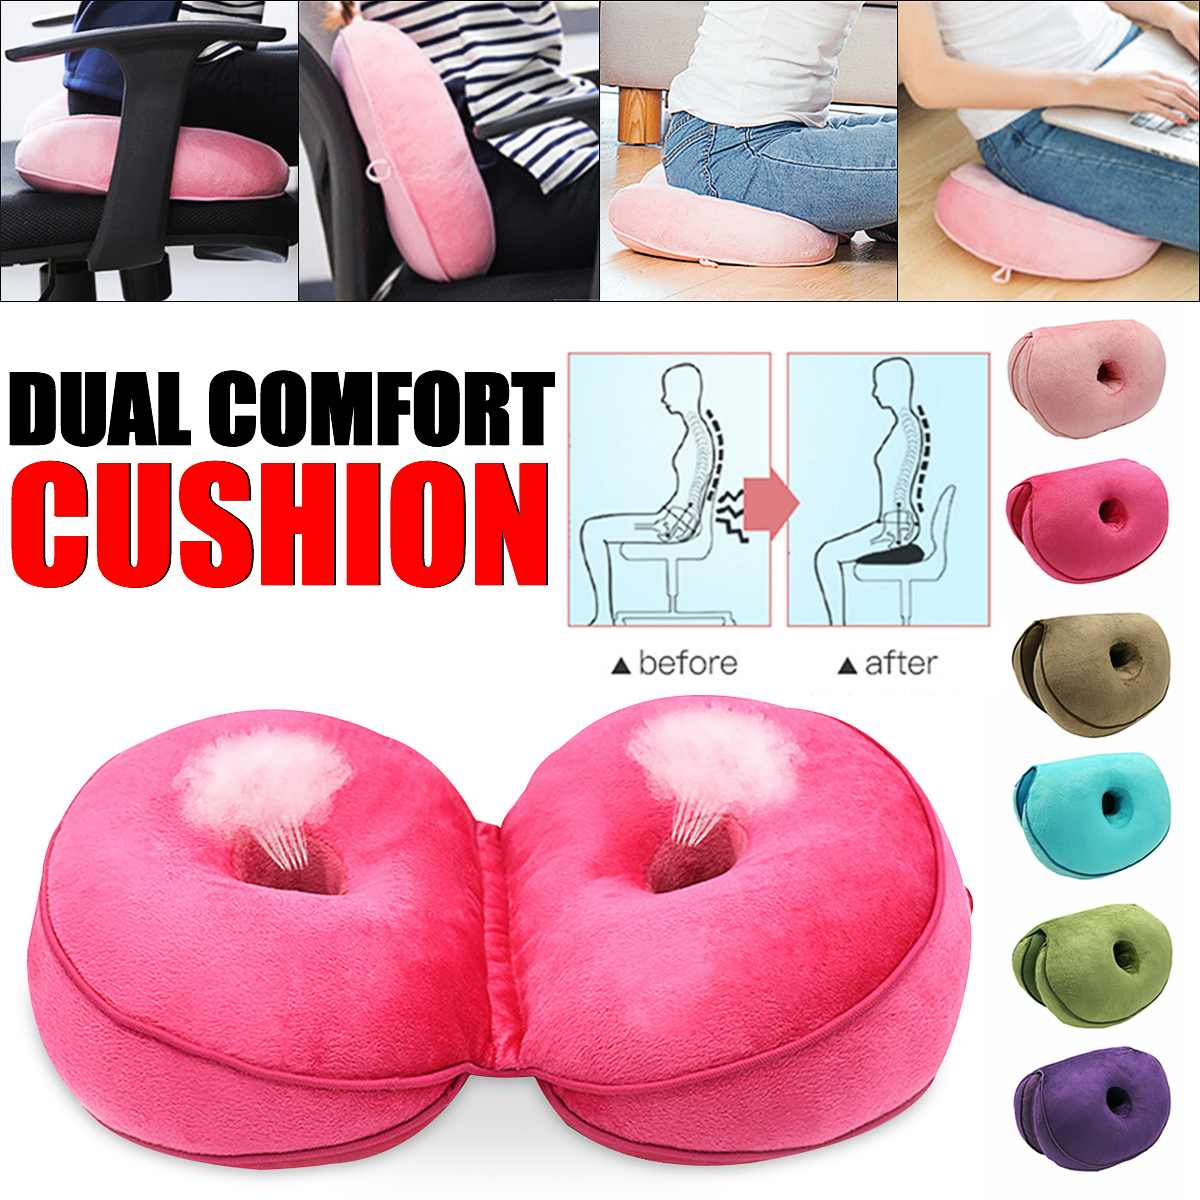 Dual Comfort Seat Cushion Memory Foam Seat Massage For Shaping Sexy Buttock Lift Hips Up Cushion Pad Lumbar Coccyx Protect New